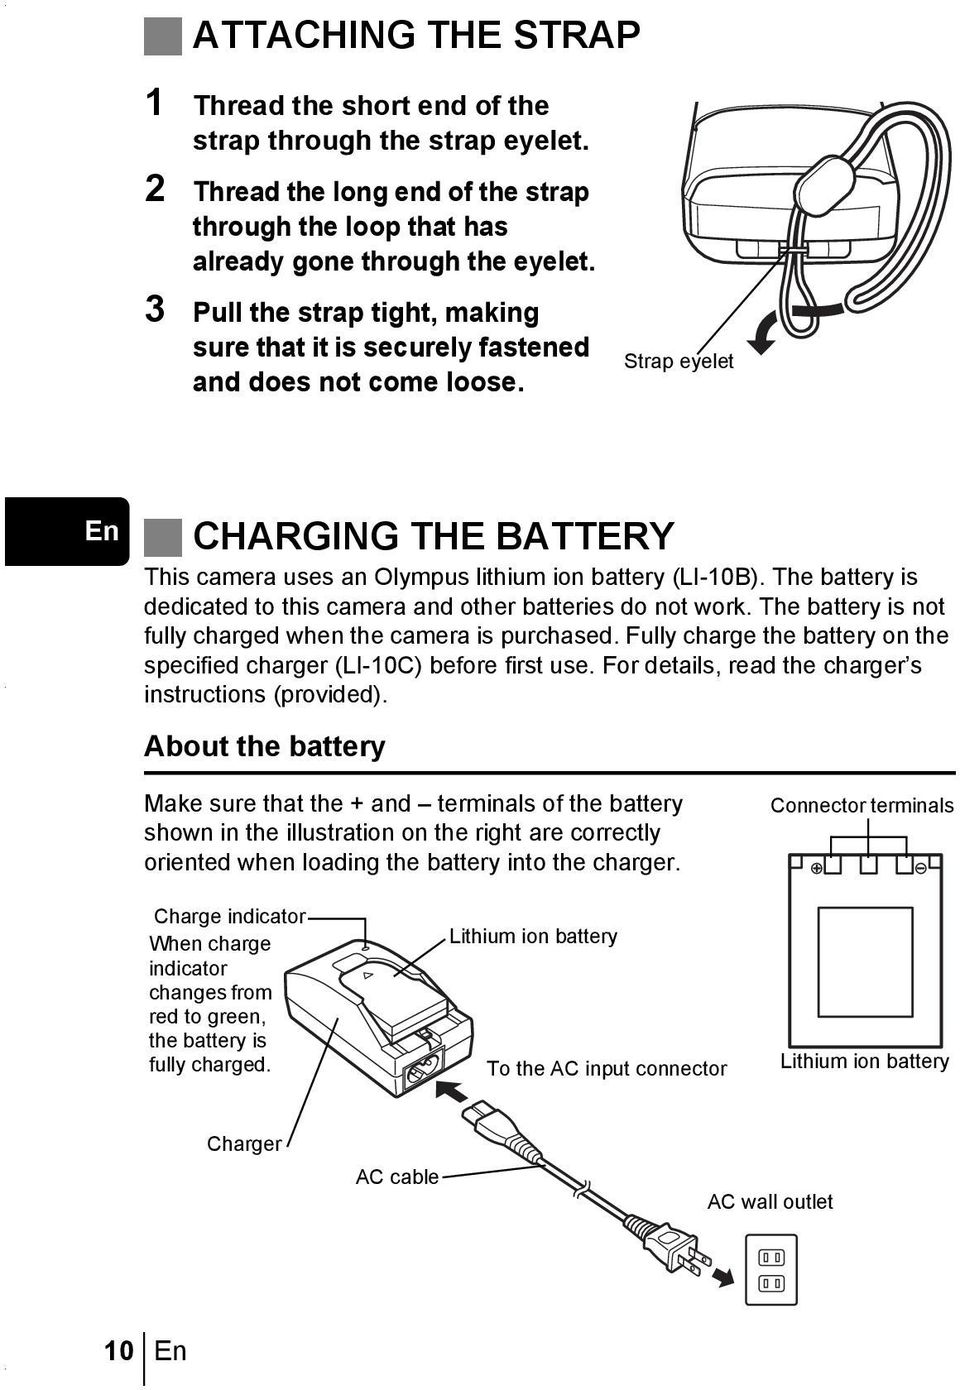 The battery is dedicated to this camera and other batteries do not work. The battery is not fully charged when the camera is purchased.